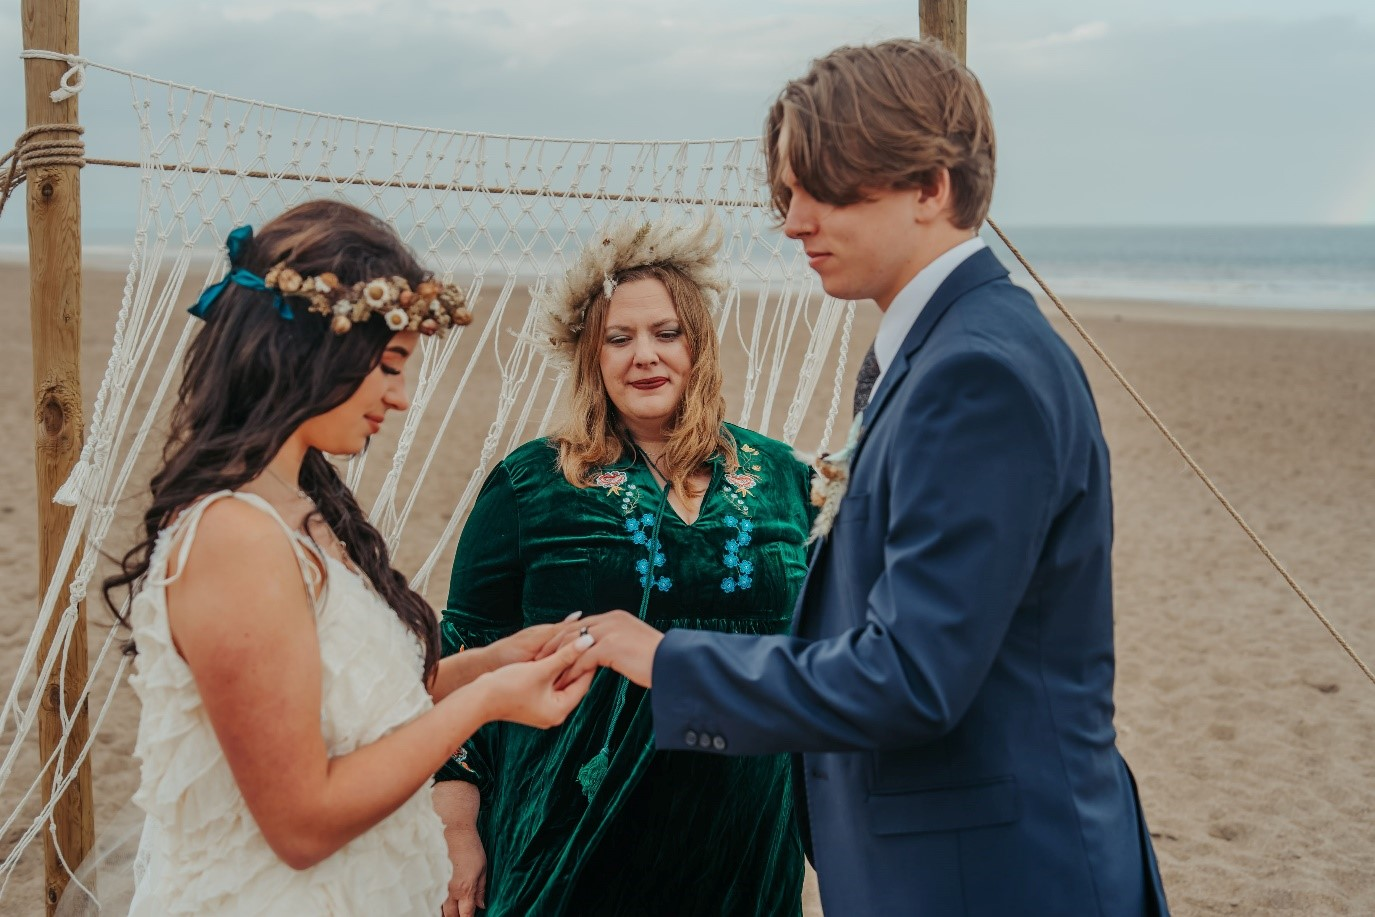 beach elopement - beach wedding - eco friendly wedding -tempest themed wedding - bohemian beach wedding ceremony